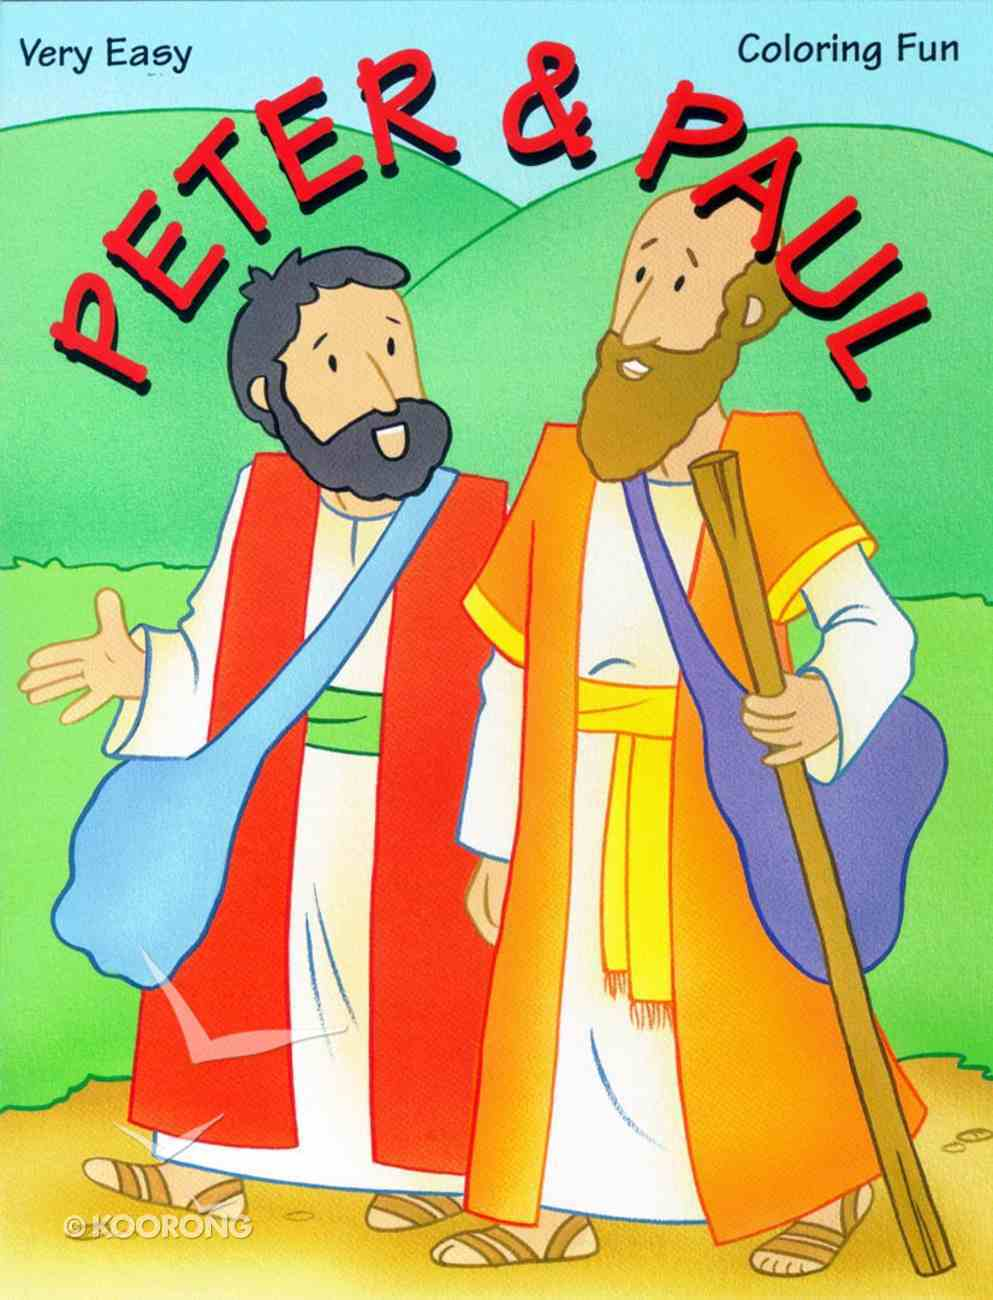 Very Easy Coloring: Peter & Paul Paperback